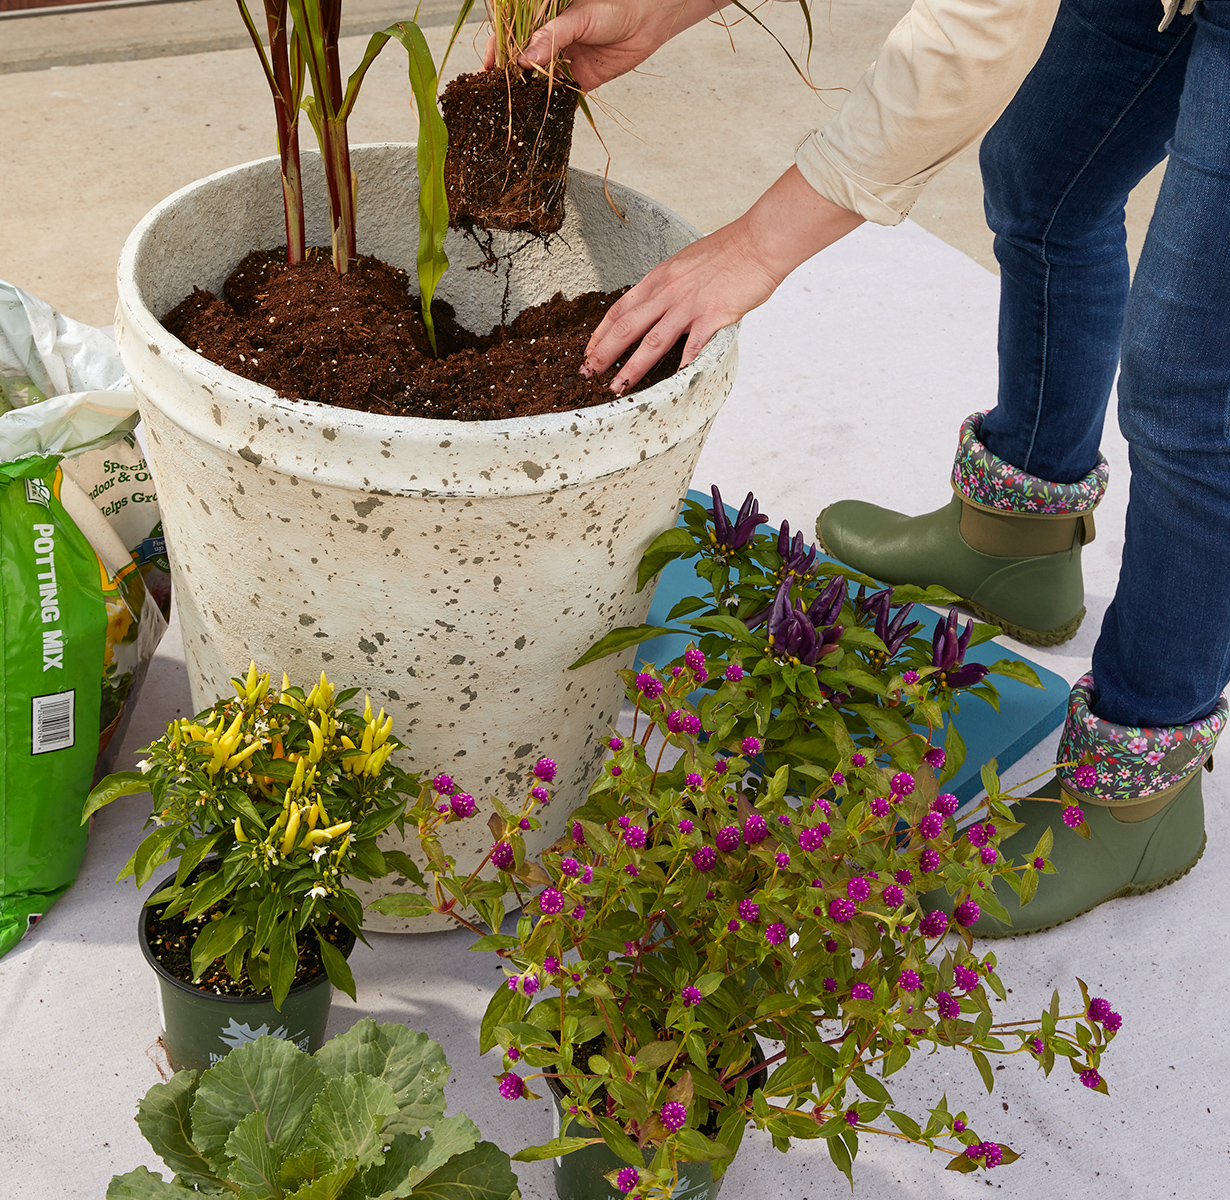 woman placing potted plants in container